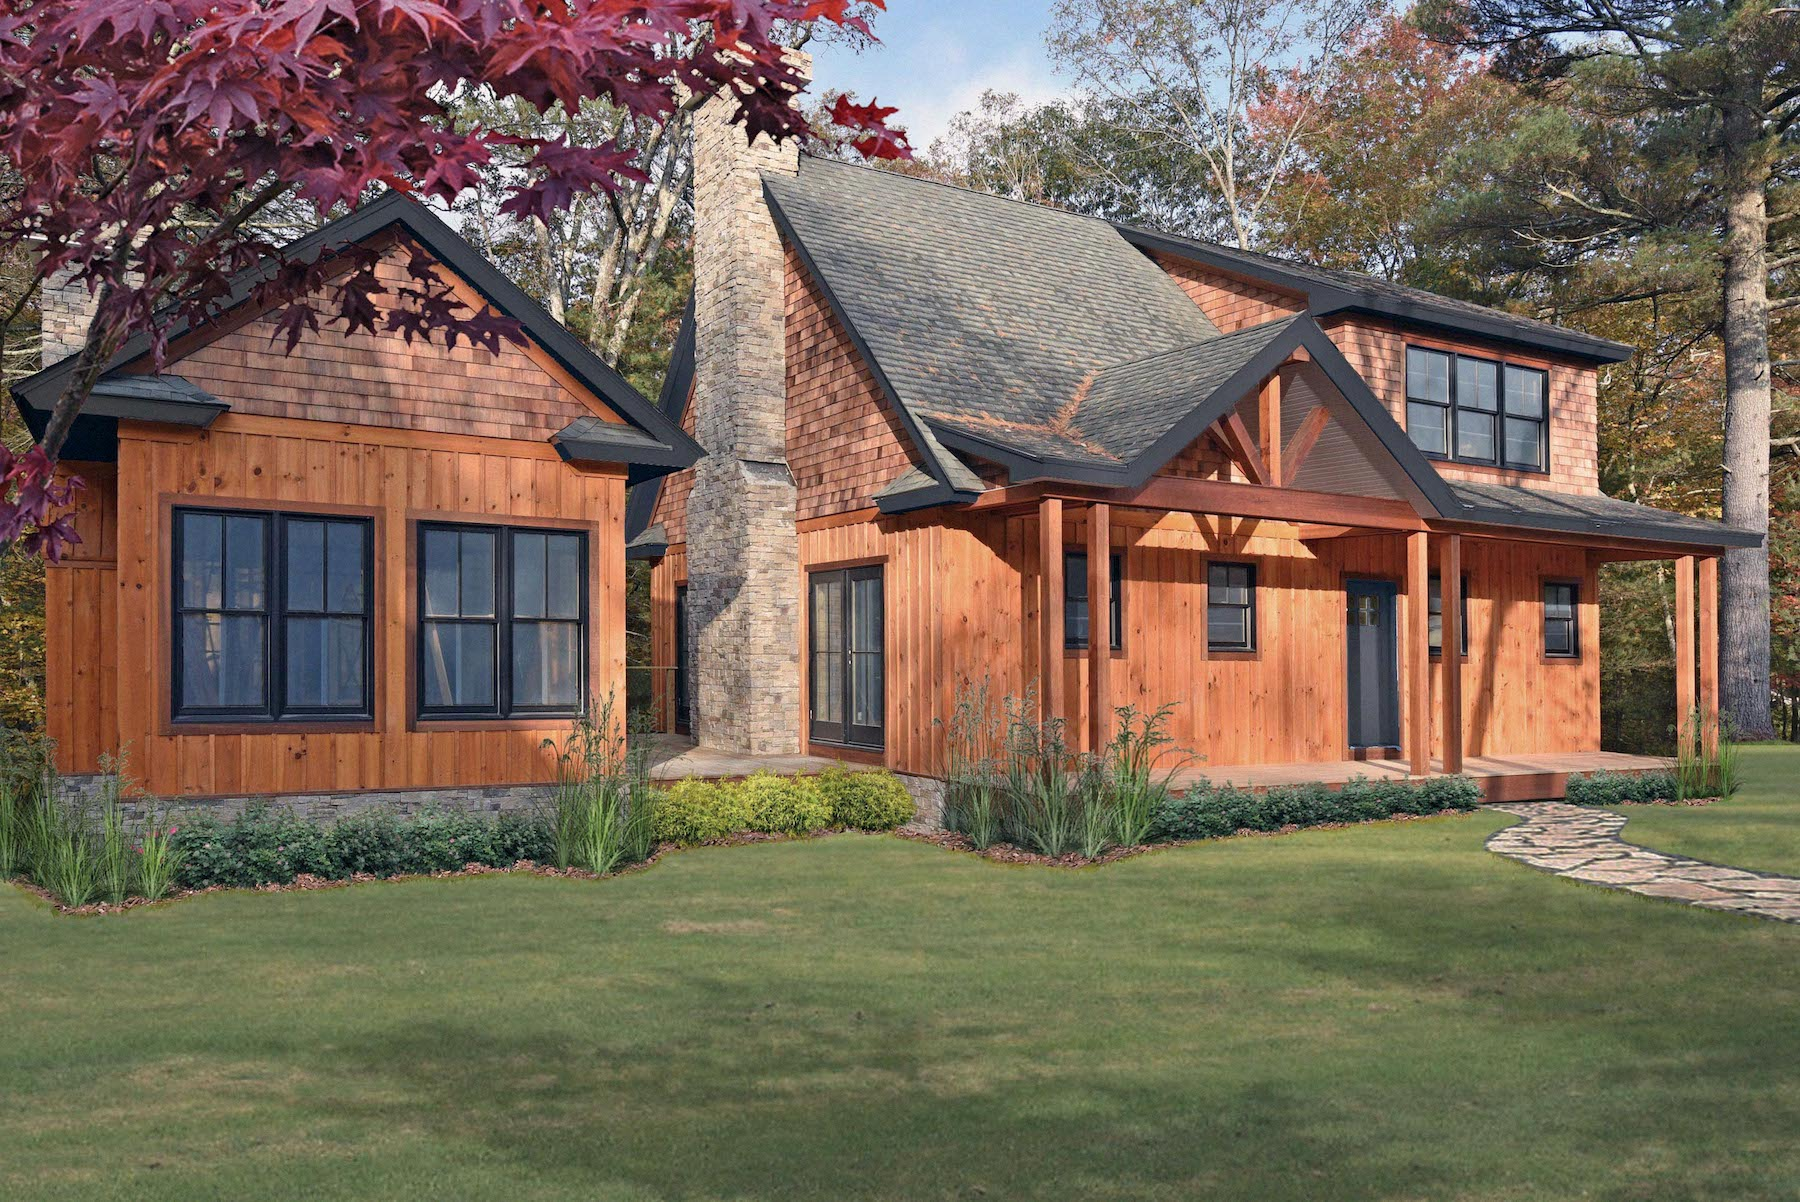 A RENDERING OF ONE OF THE CABINS available at The Preserve at Boulder Hills, a $150 million sporting lifestyle development in Richmond. /COURTESY THE PRESERVE